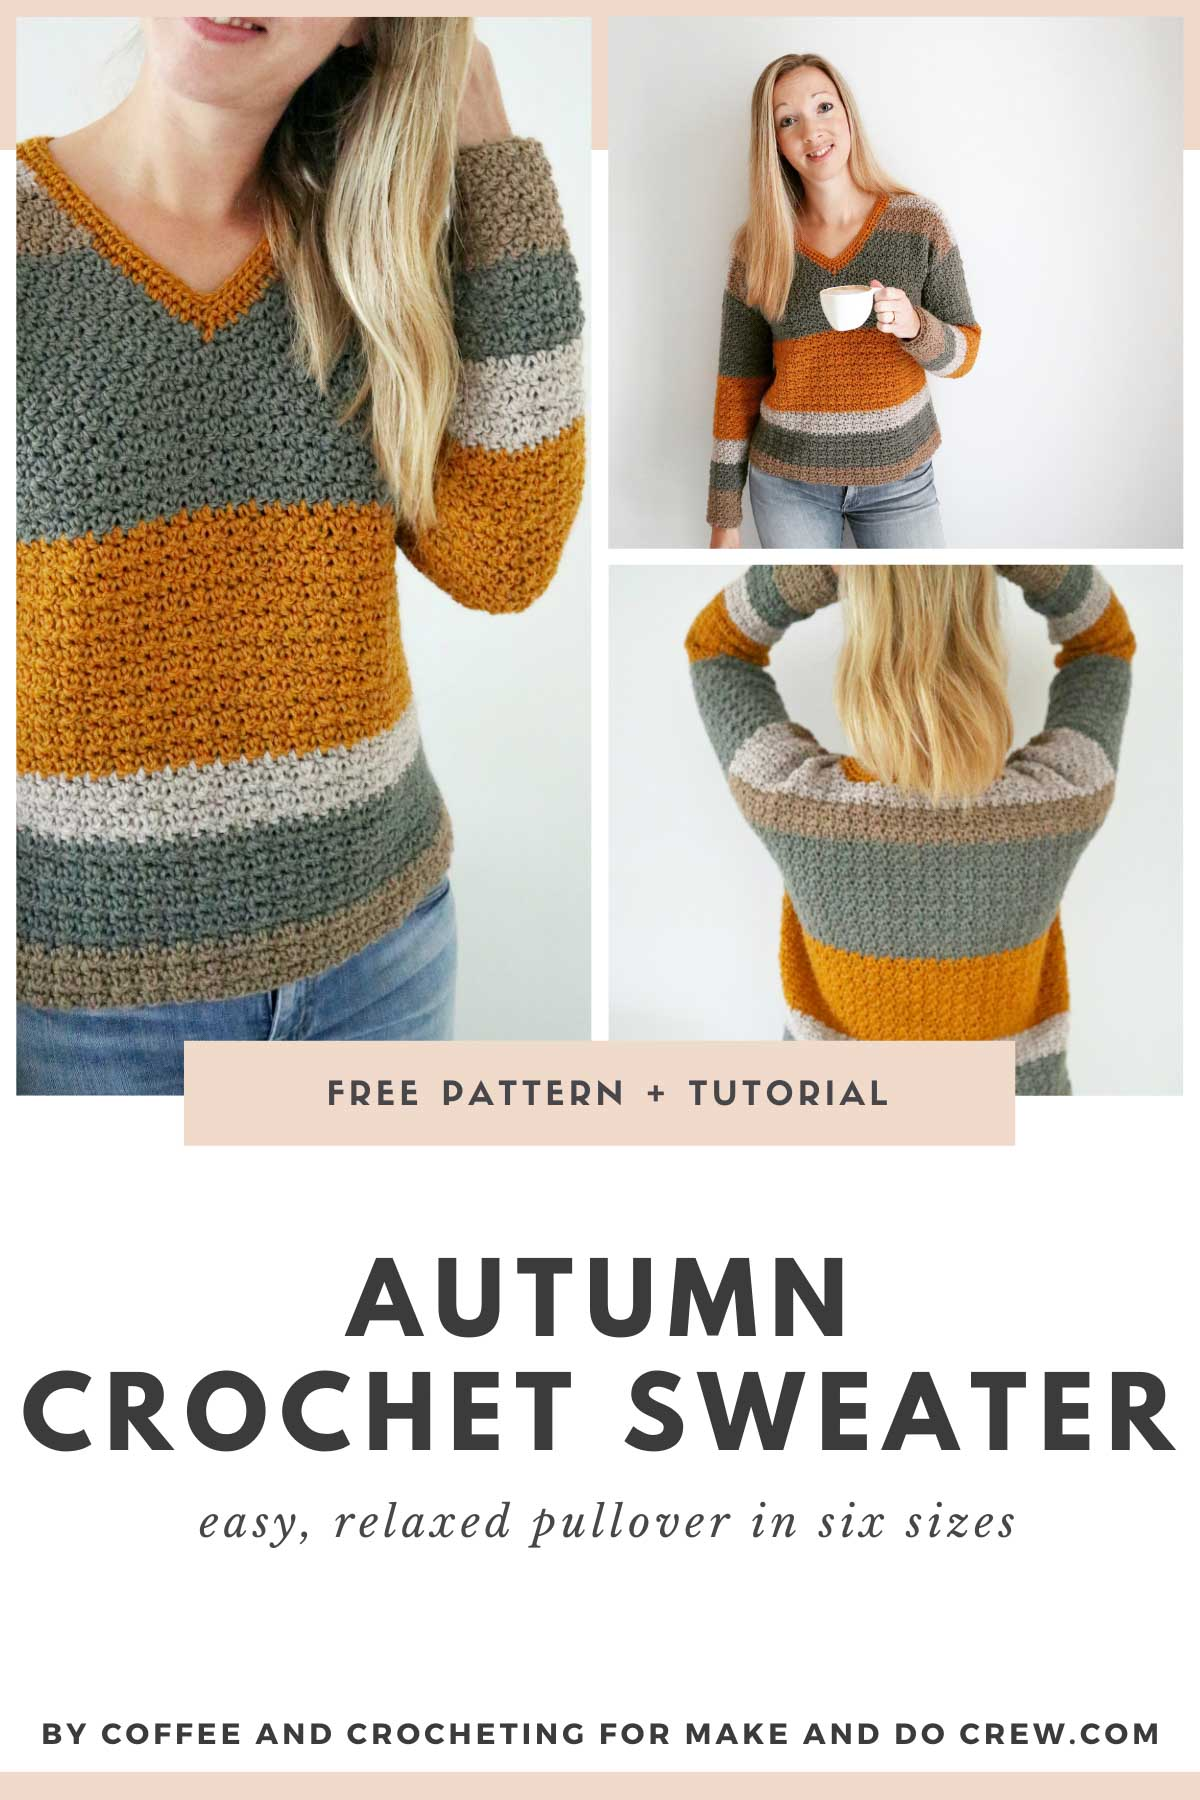 Creative construction and simple stitches come together easily in this crochet pullover pattern made with Lion Brand Merino Yak Alpaca yarn.